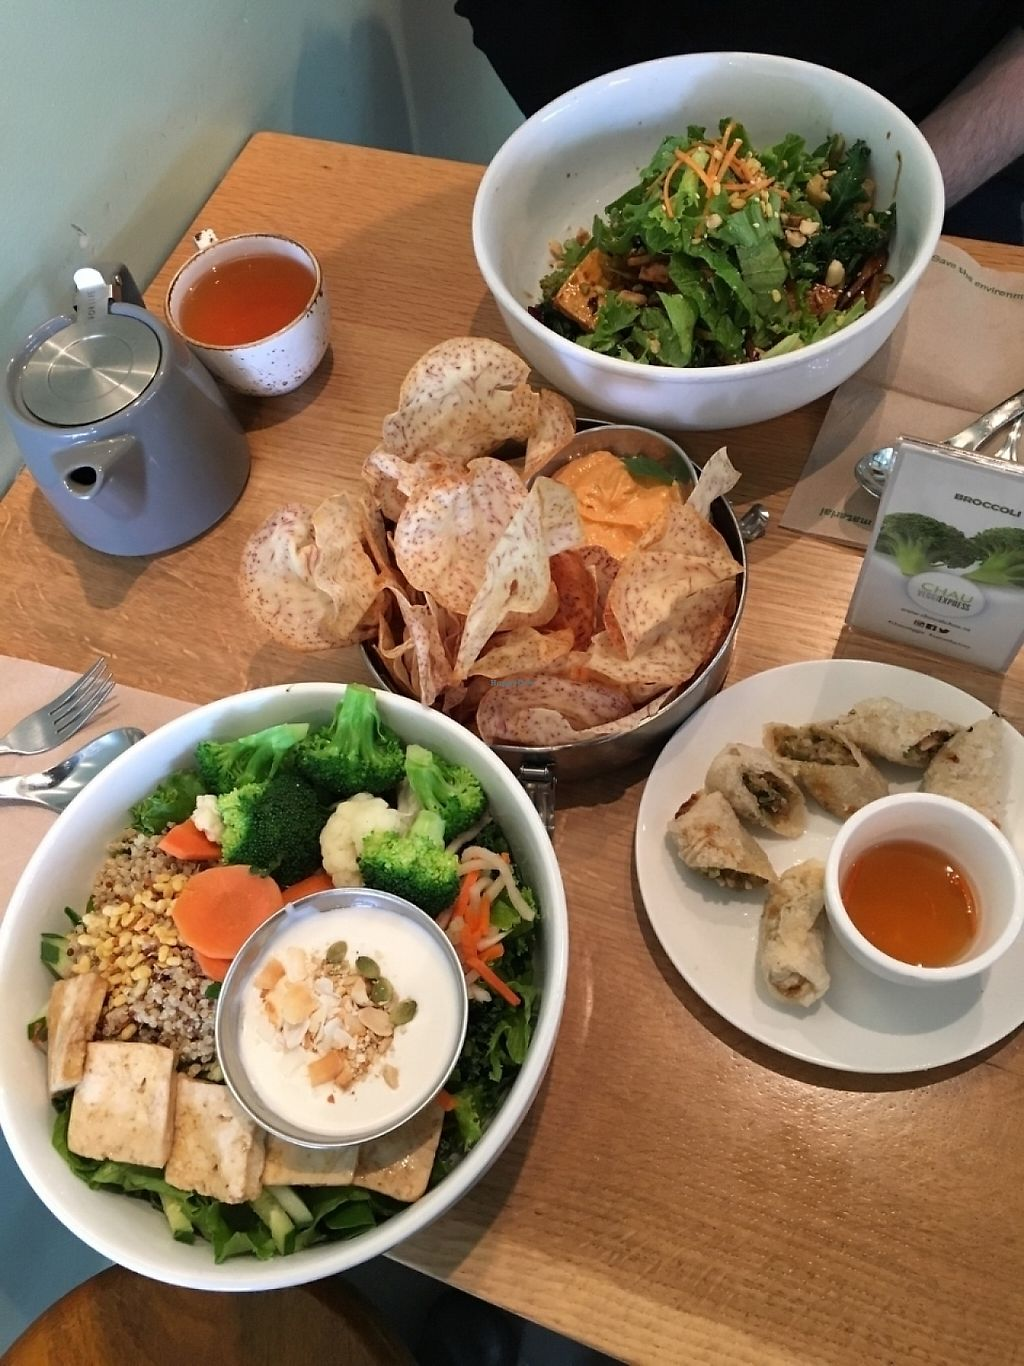 "Photo of Chau VeggiExpress  by <a href=""/members/profile/vegan%20frog"">vegan frog</a> <br/>A delicious vegan meal! <br/> June 8, 2016  - <a href='/contact/abuse/image/26705/230768'>Report</a>"